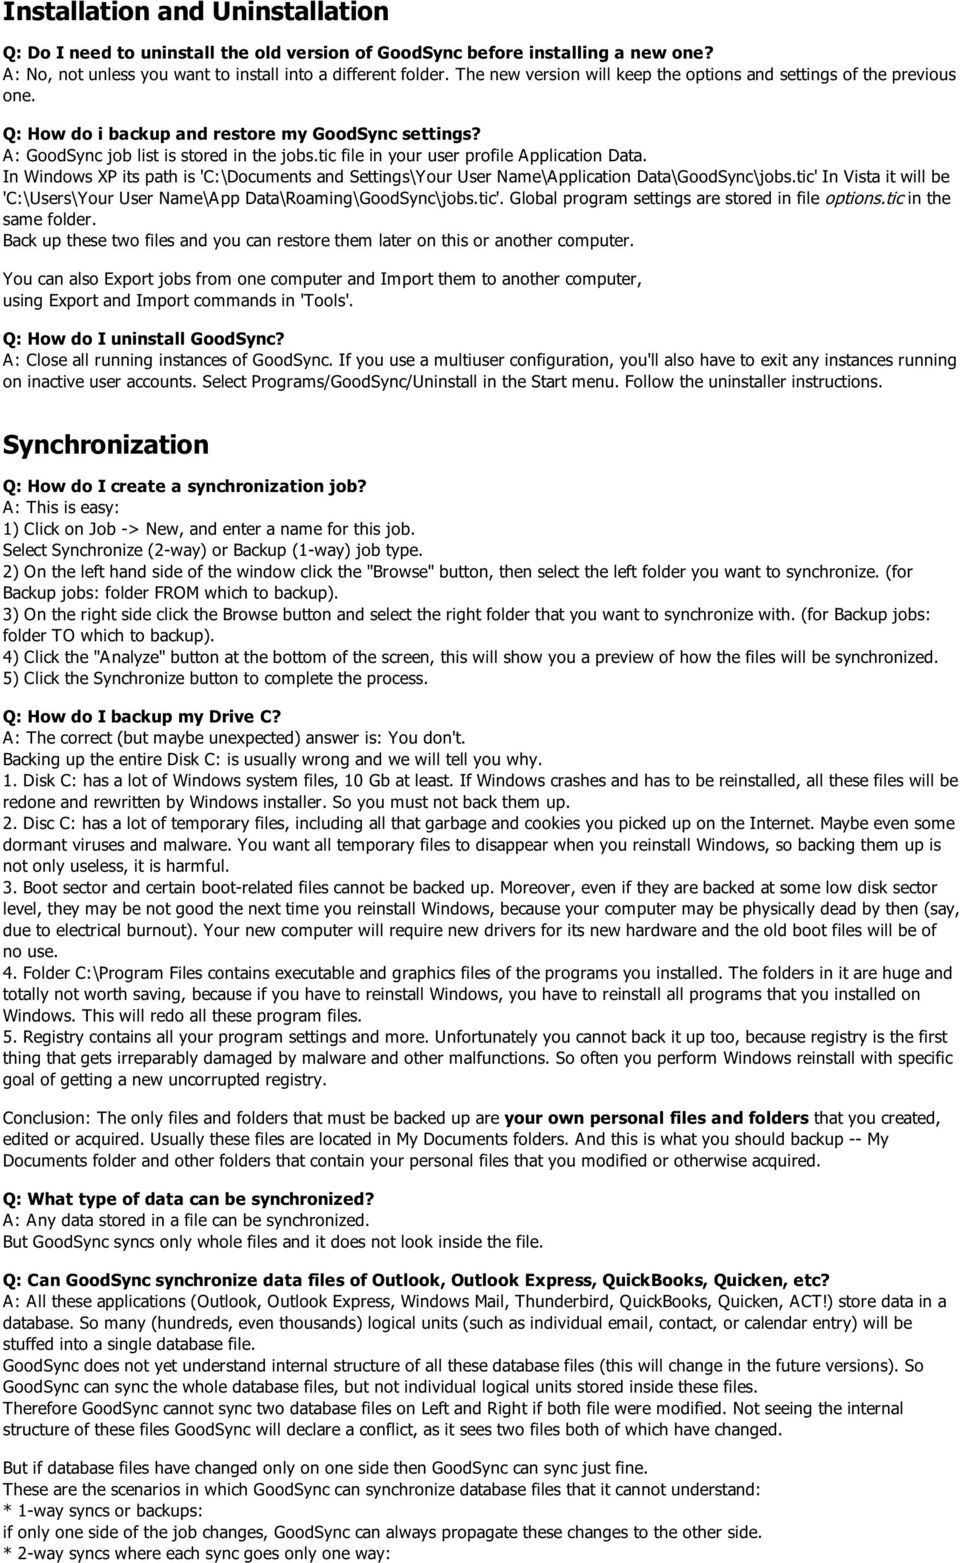 GoodSync Frequently Asked Questions Siber Systems, Inc  Copyright - PDF